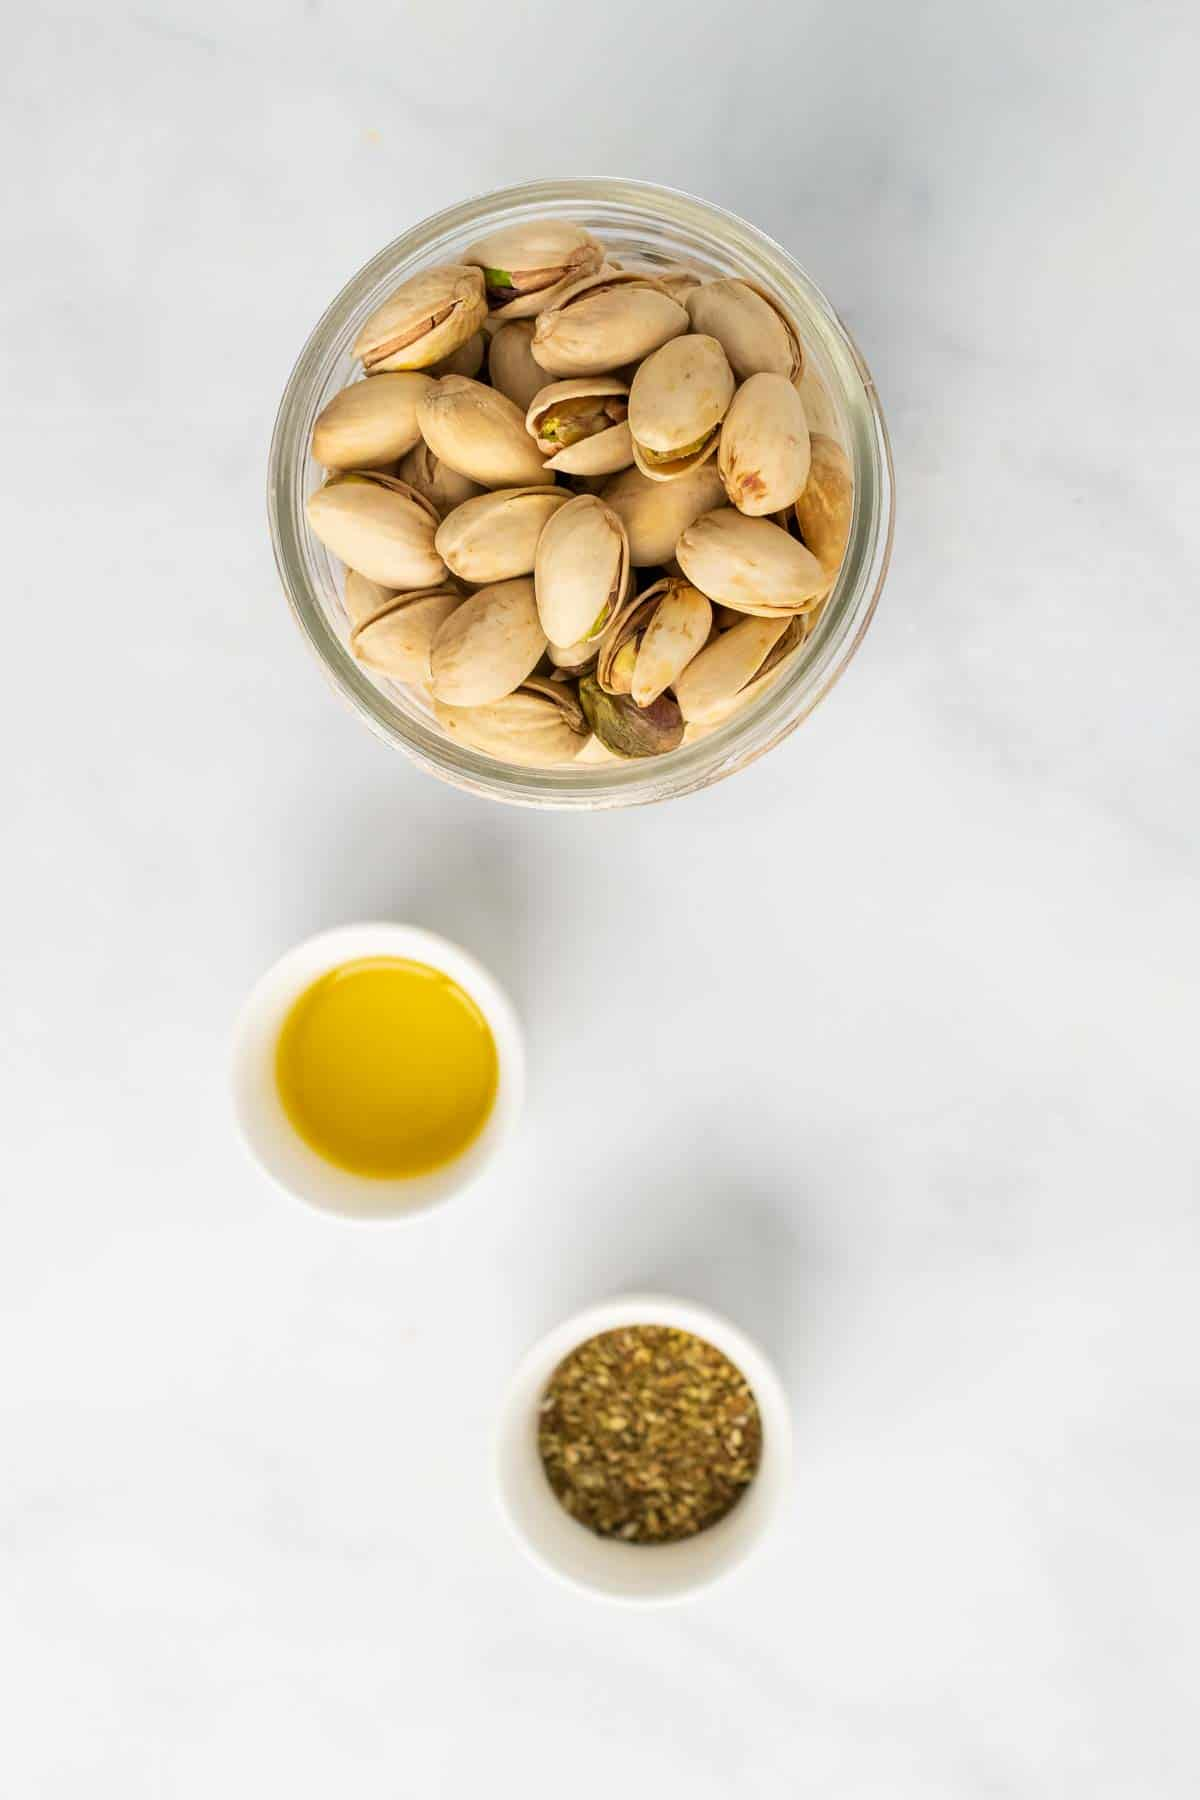 Pistachios, oil, and spices in individual ramekins